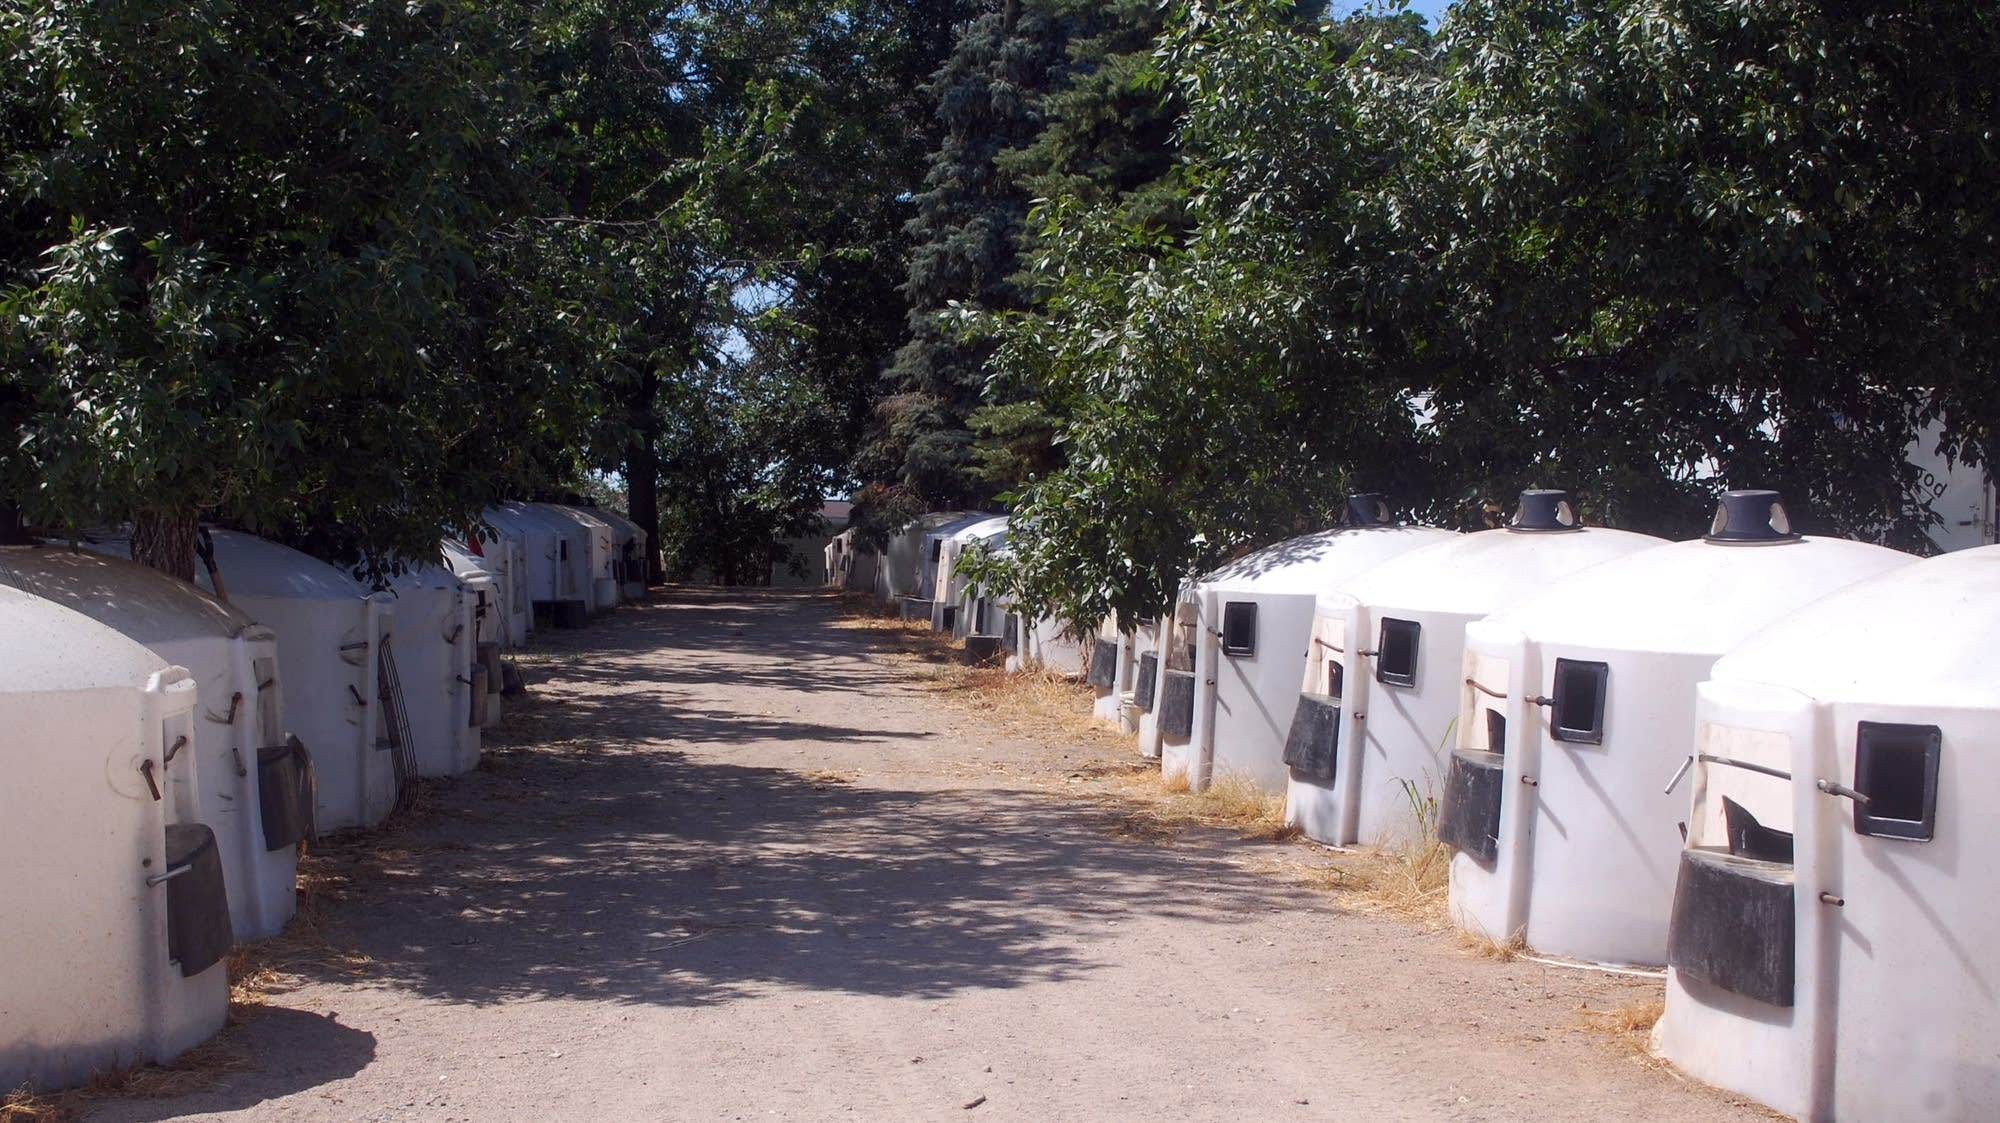 Rows of plastic huts house young calves.